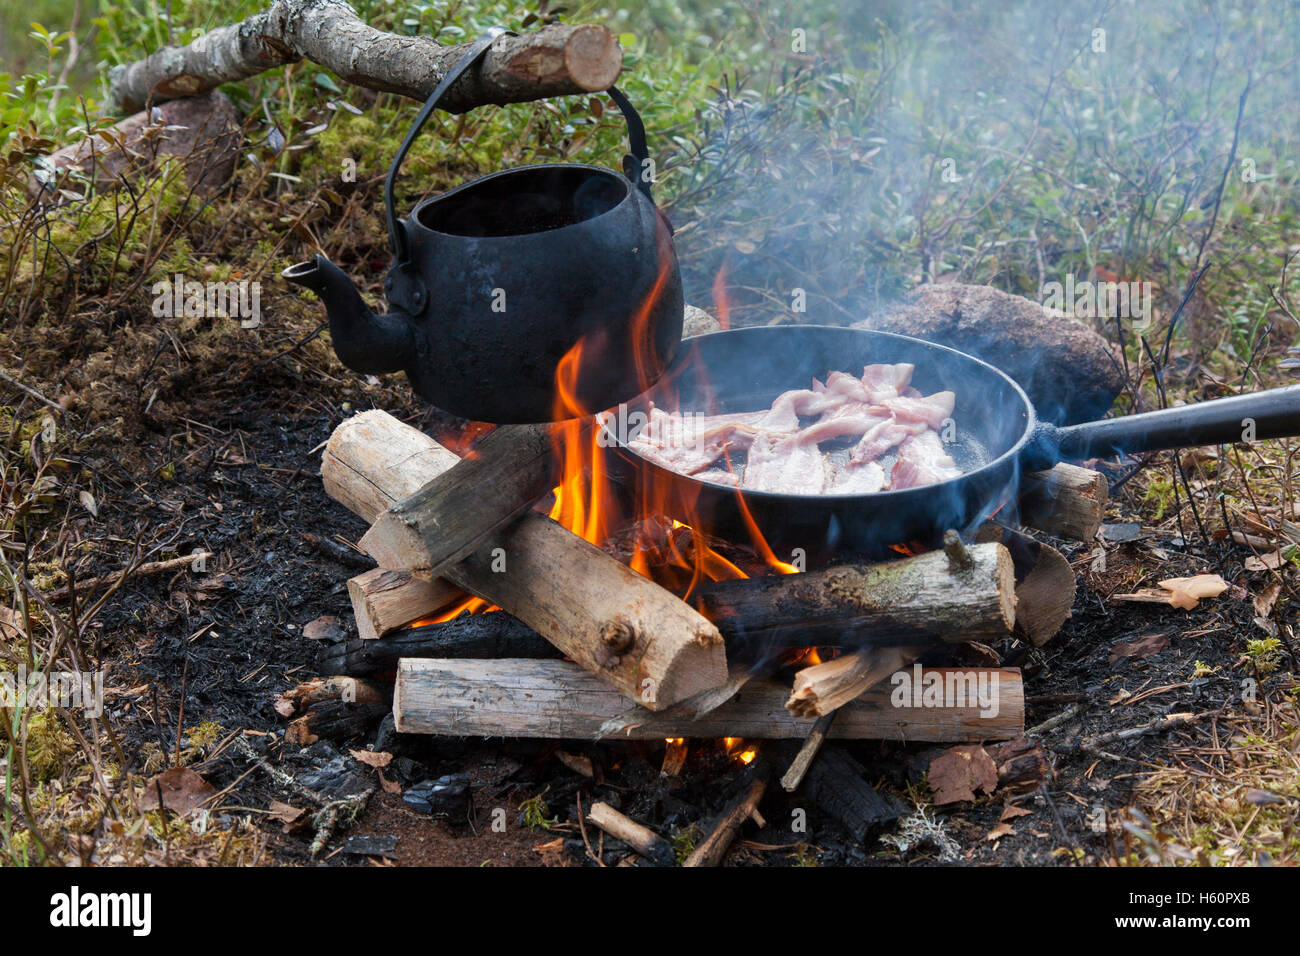 how to cook bacon in pan with water